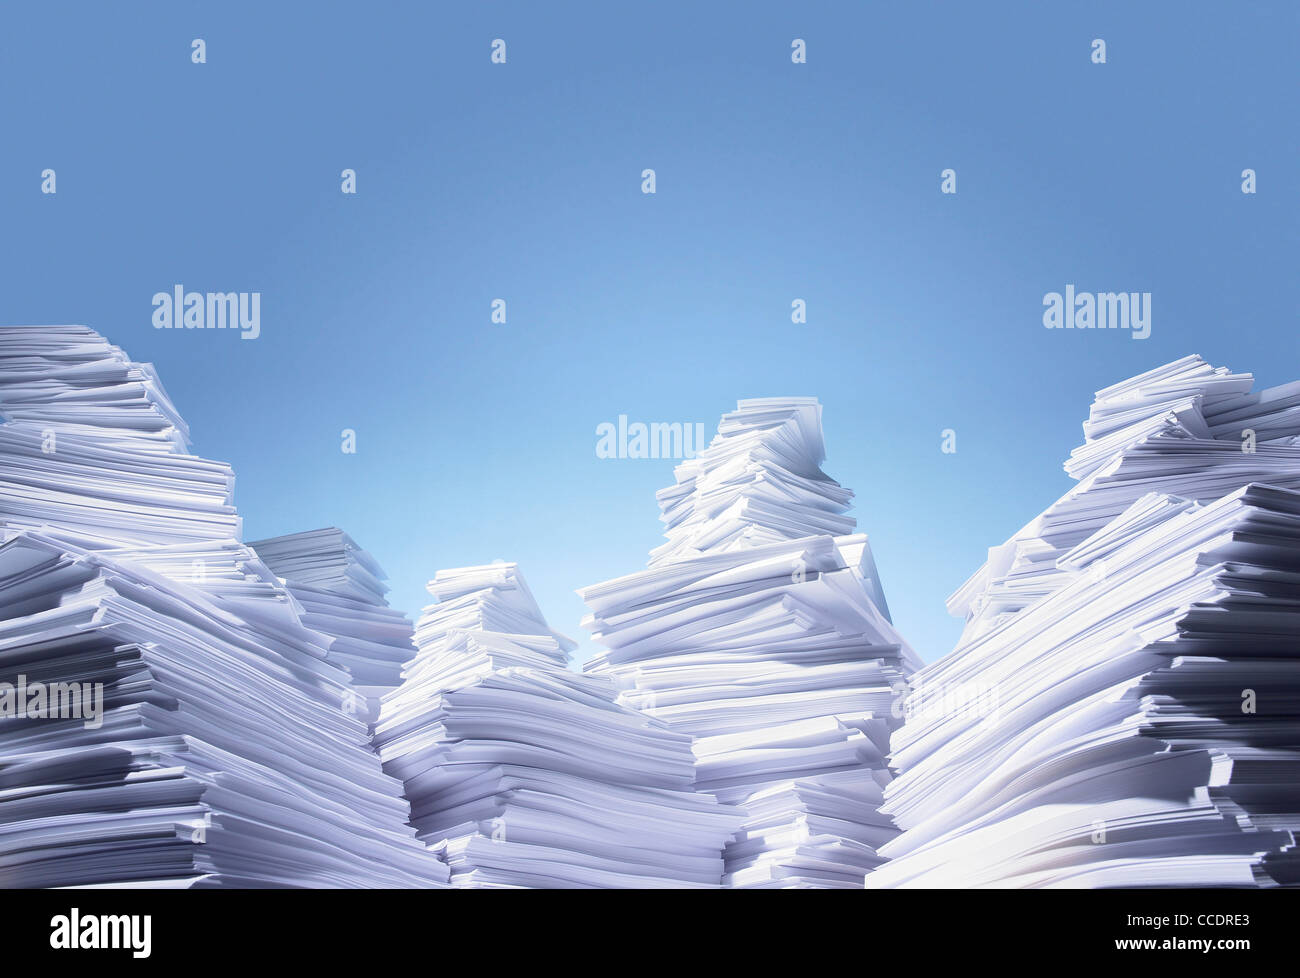 a mountain range made from paper - Stock Image